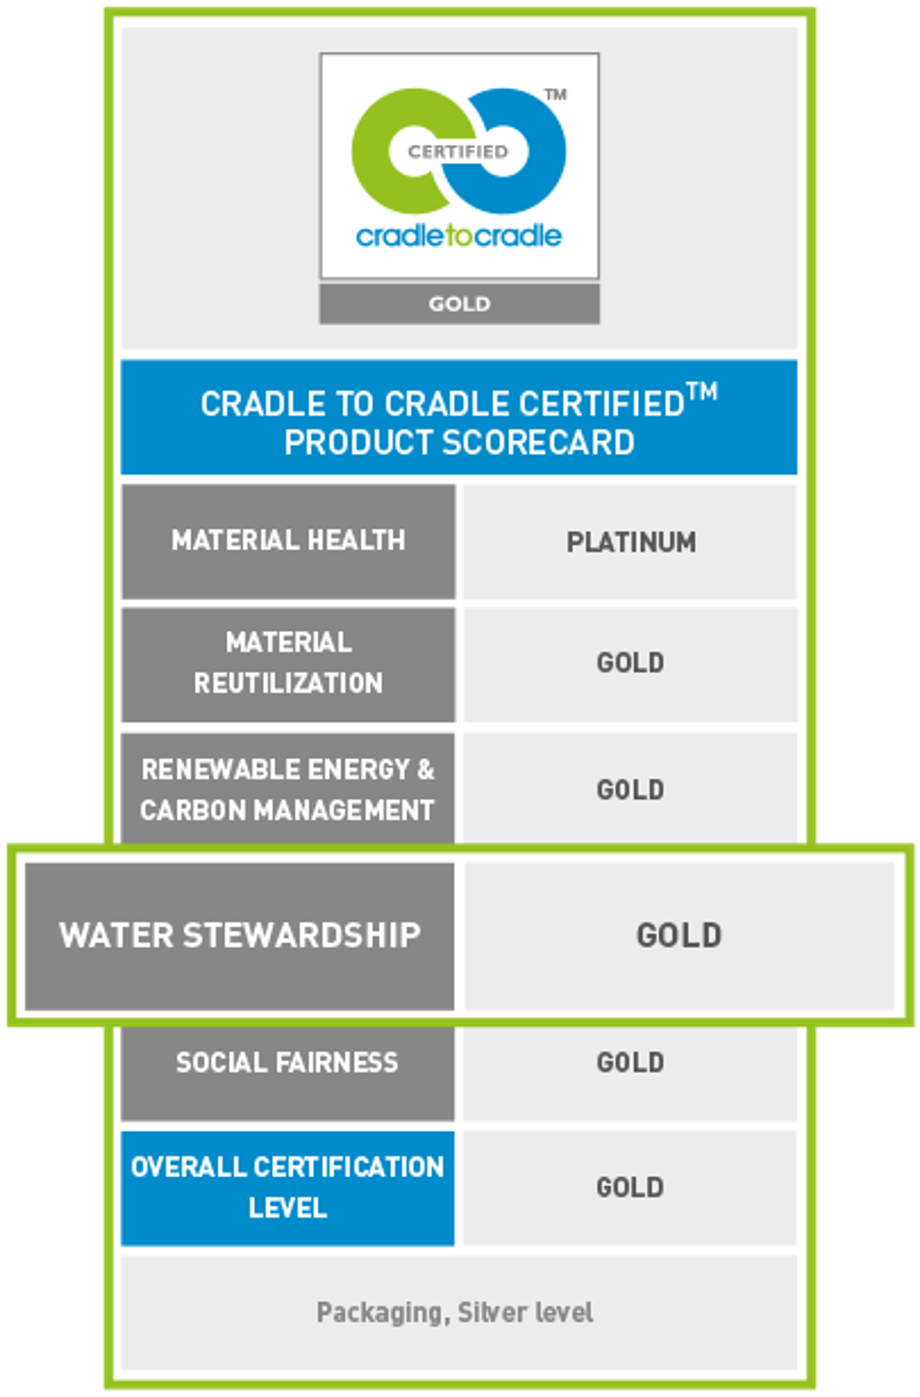 werner mertz professional green care cradle to cradle c2c duurzaamheid score card water stewardship gold